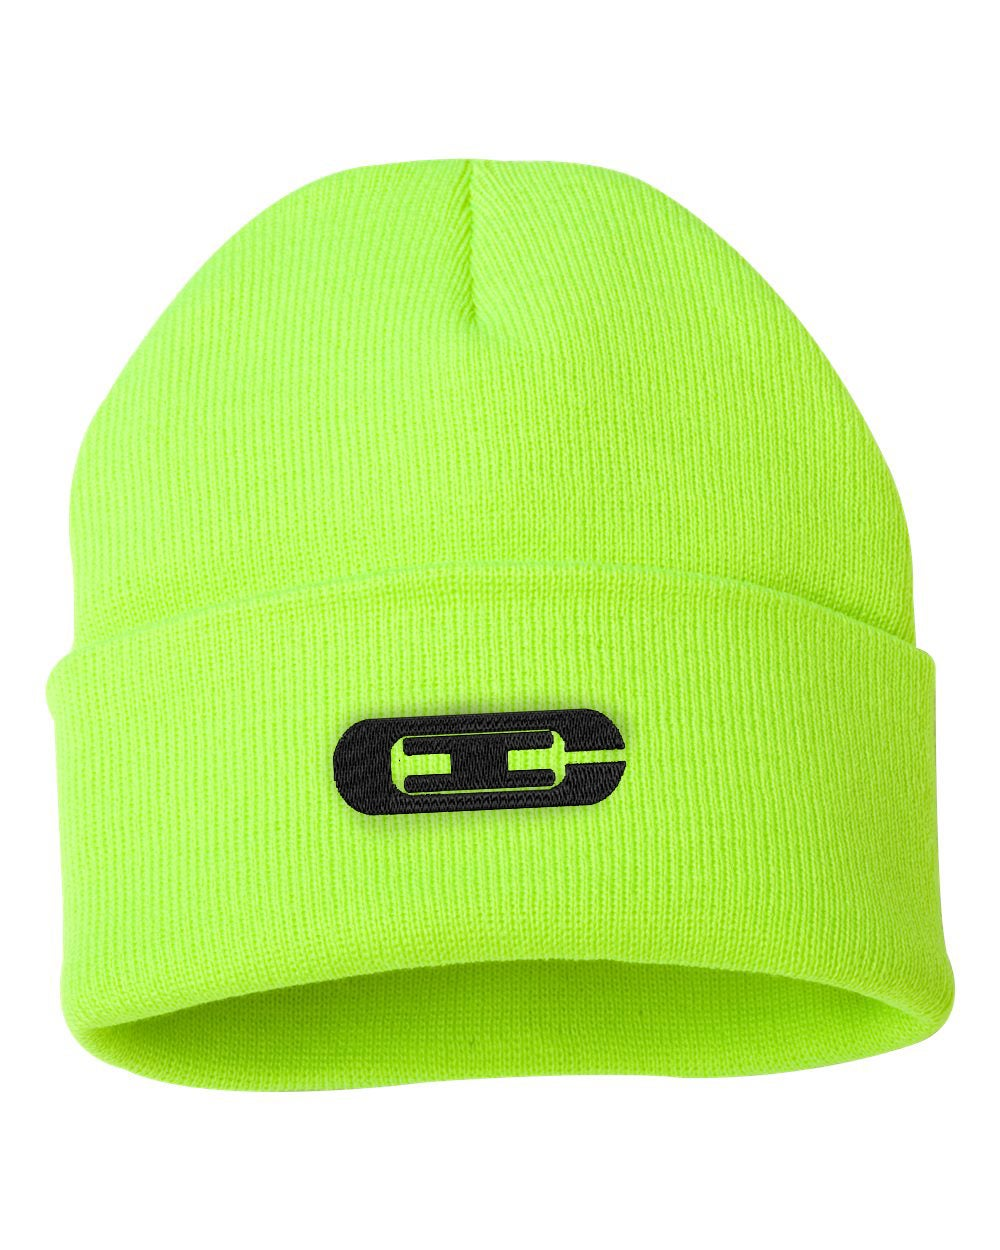 Image of WINTER 21 Slime Beanie